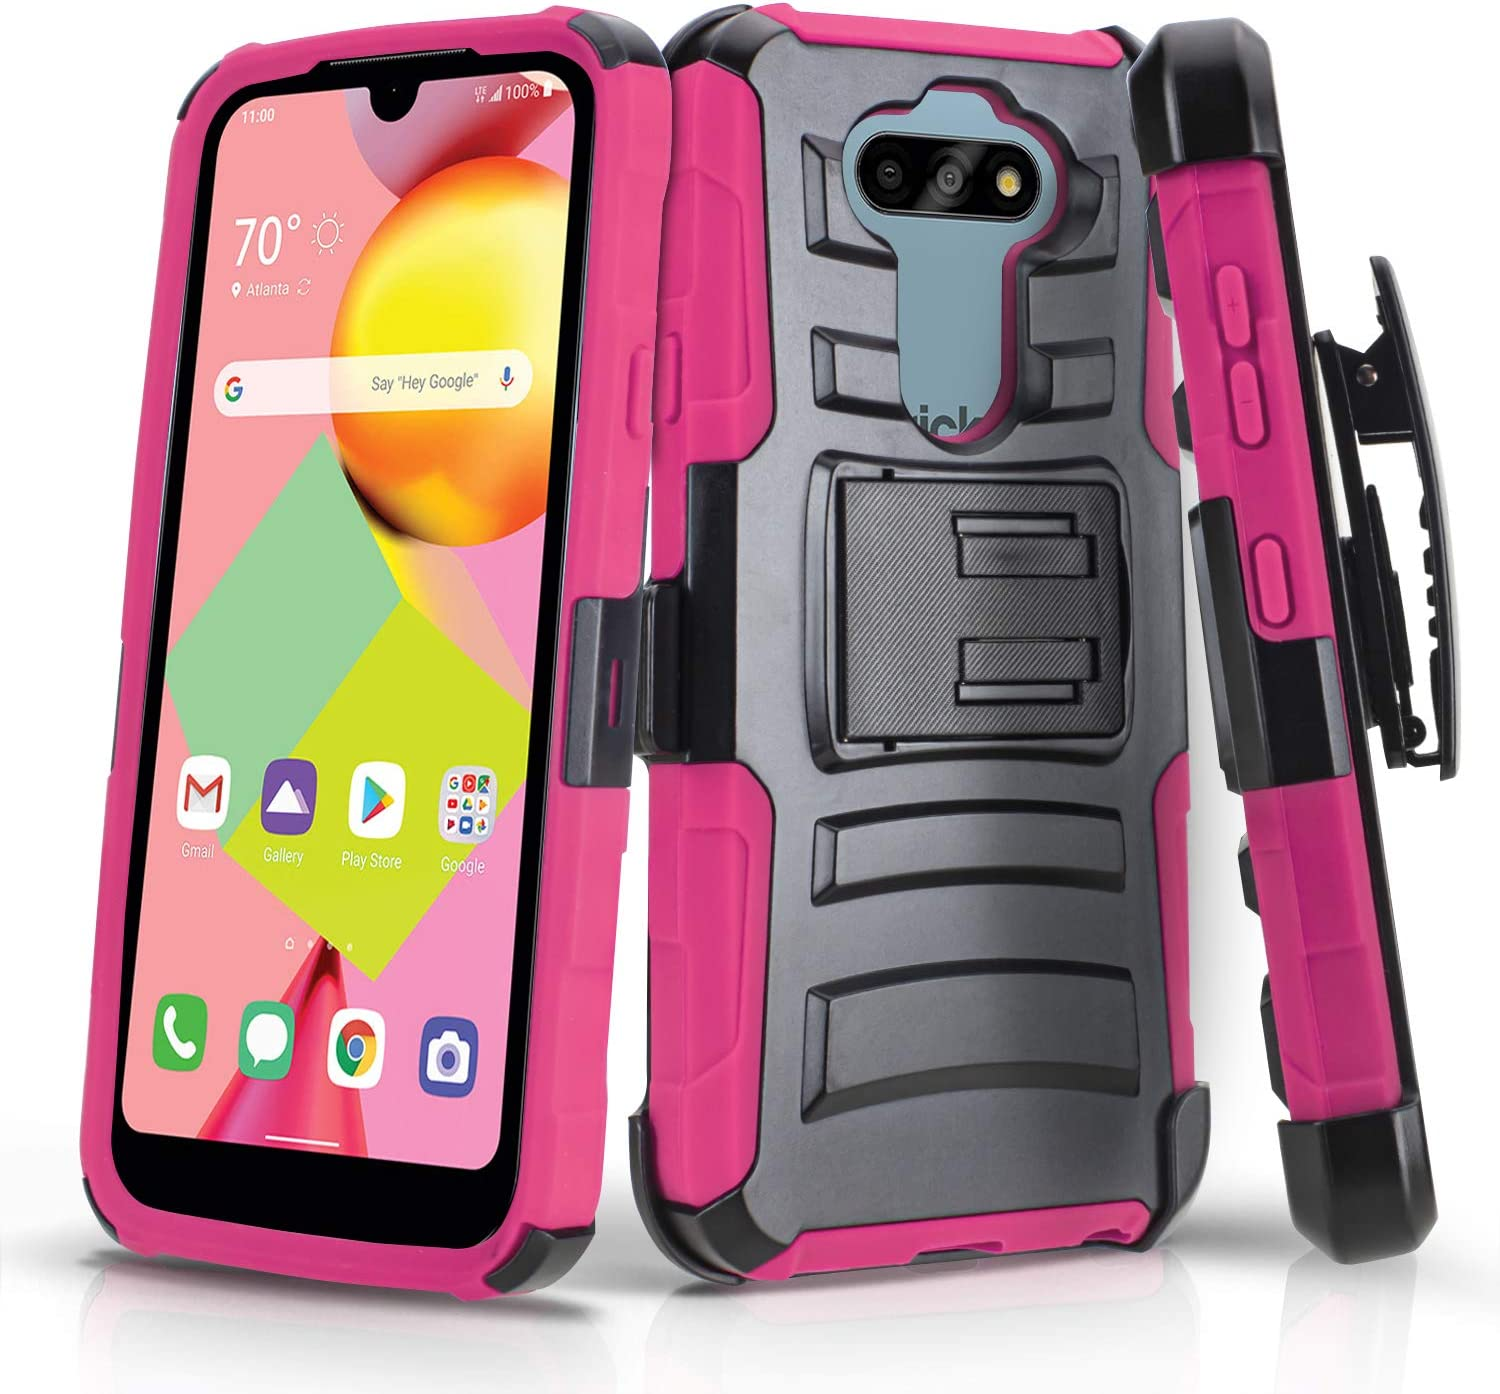 CasemartUSA Phone Case for [LG Risio 4 (Cricket Wireless)], [Refined Series][Pink] Shockproof Protective Cover with Built-in Kickstand & Swivel Belt Clip Holster for LG Risio 4 (Cricket Wireless)